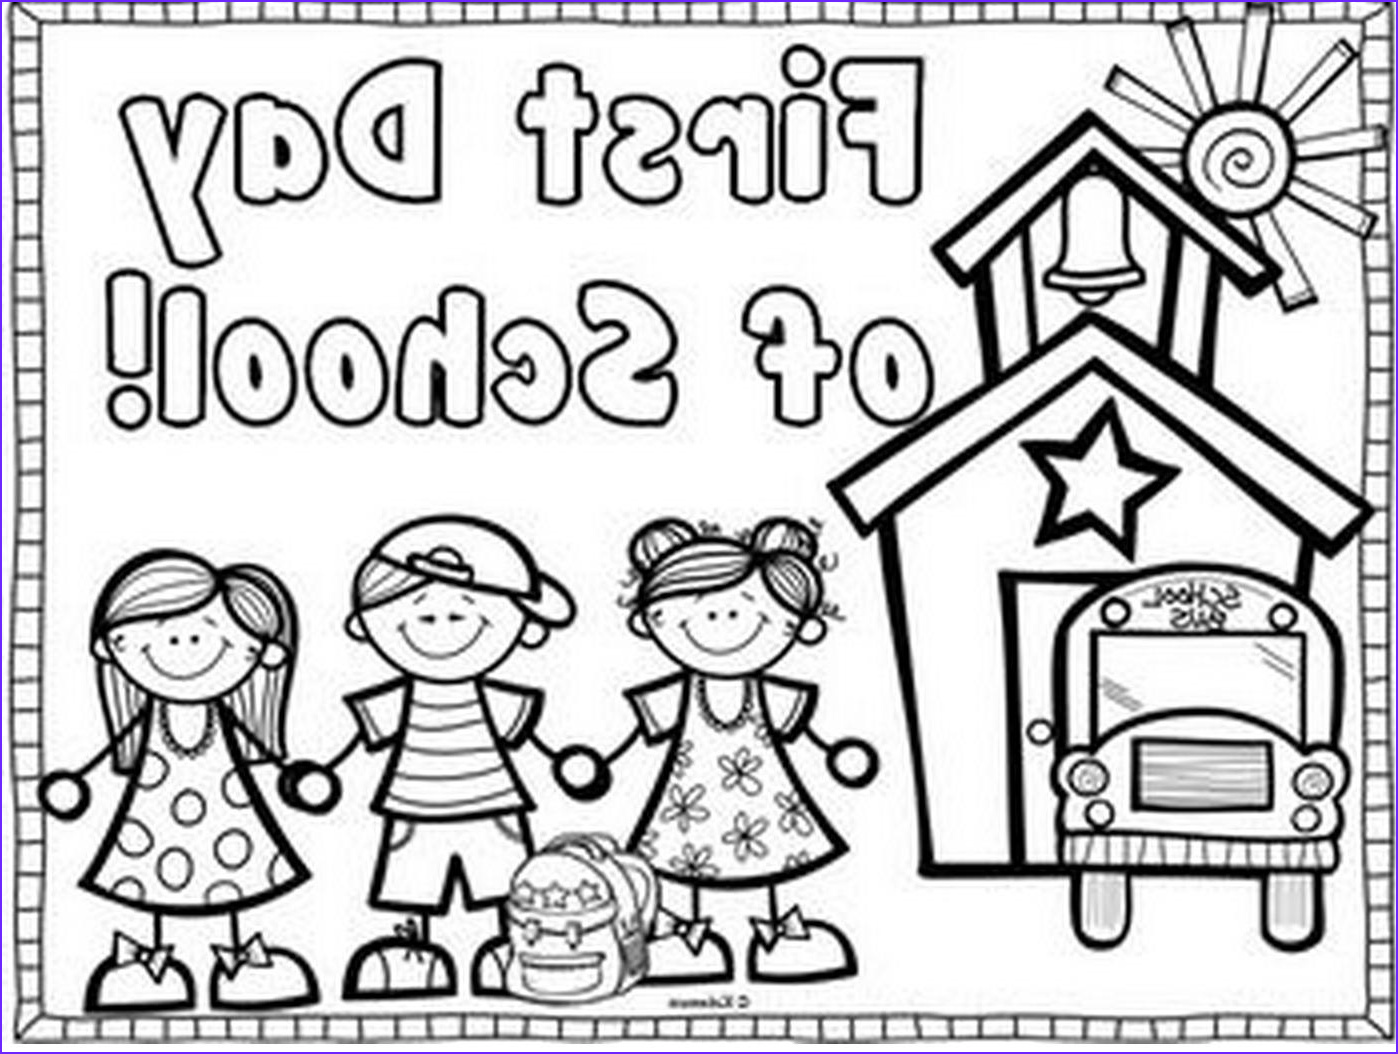 First Day Of Preschool Coloring Pages Inspirational Photos First Day Kindergarten Coloring Page Kids Coloring Page